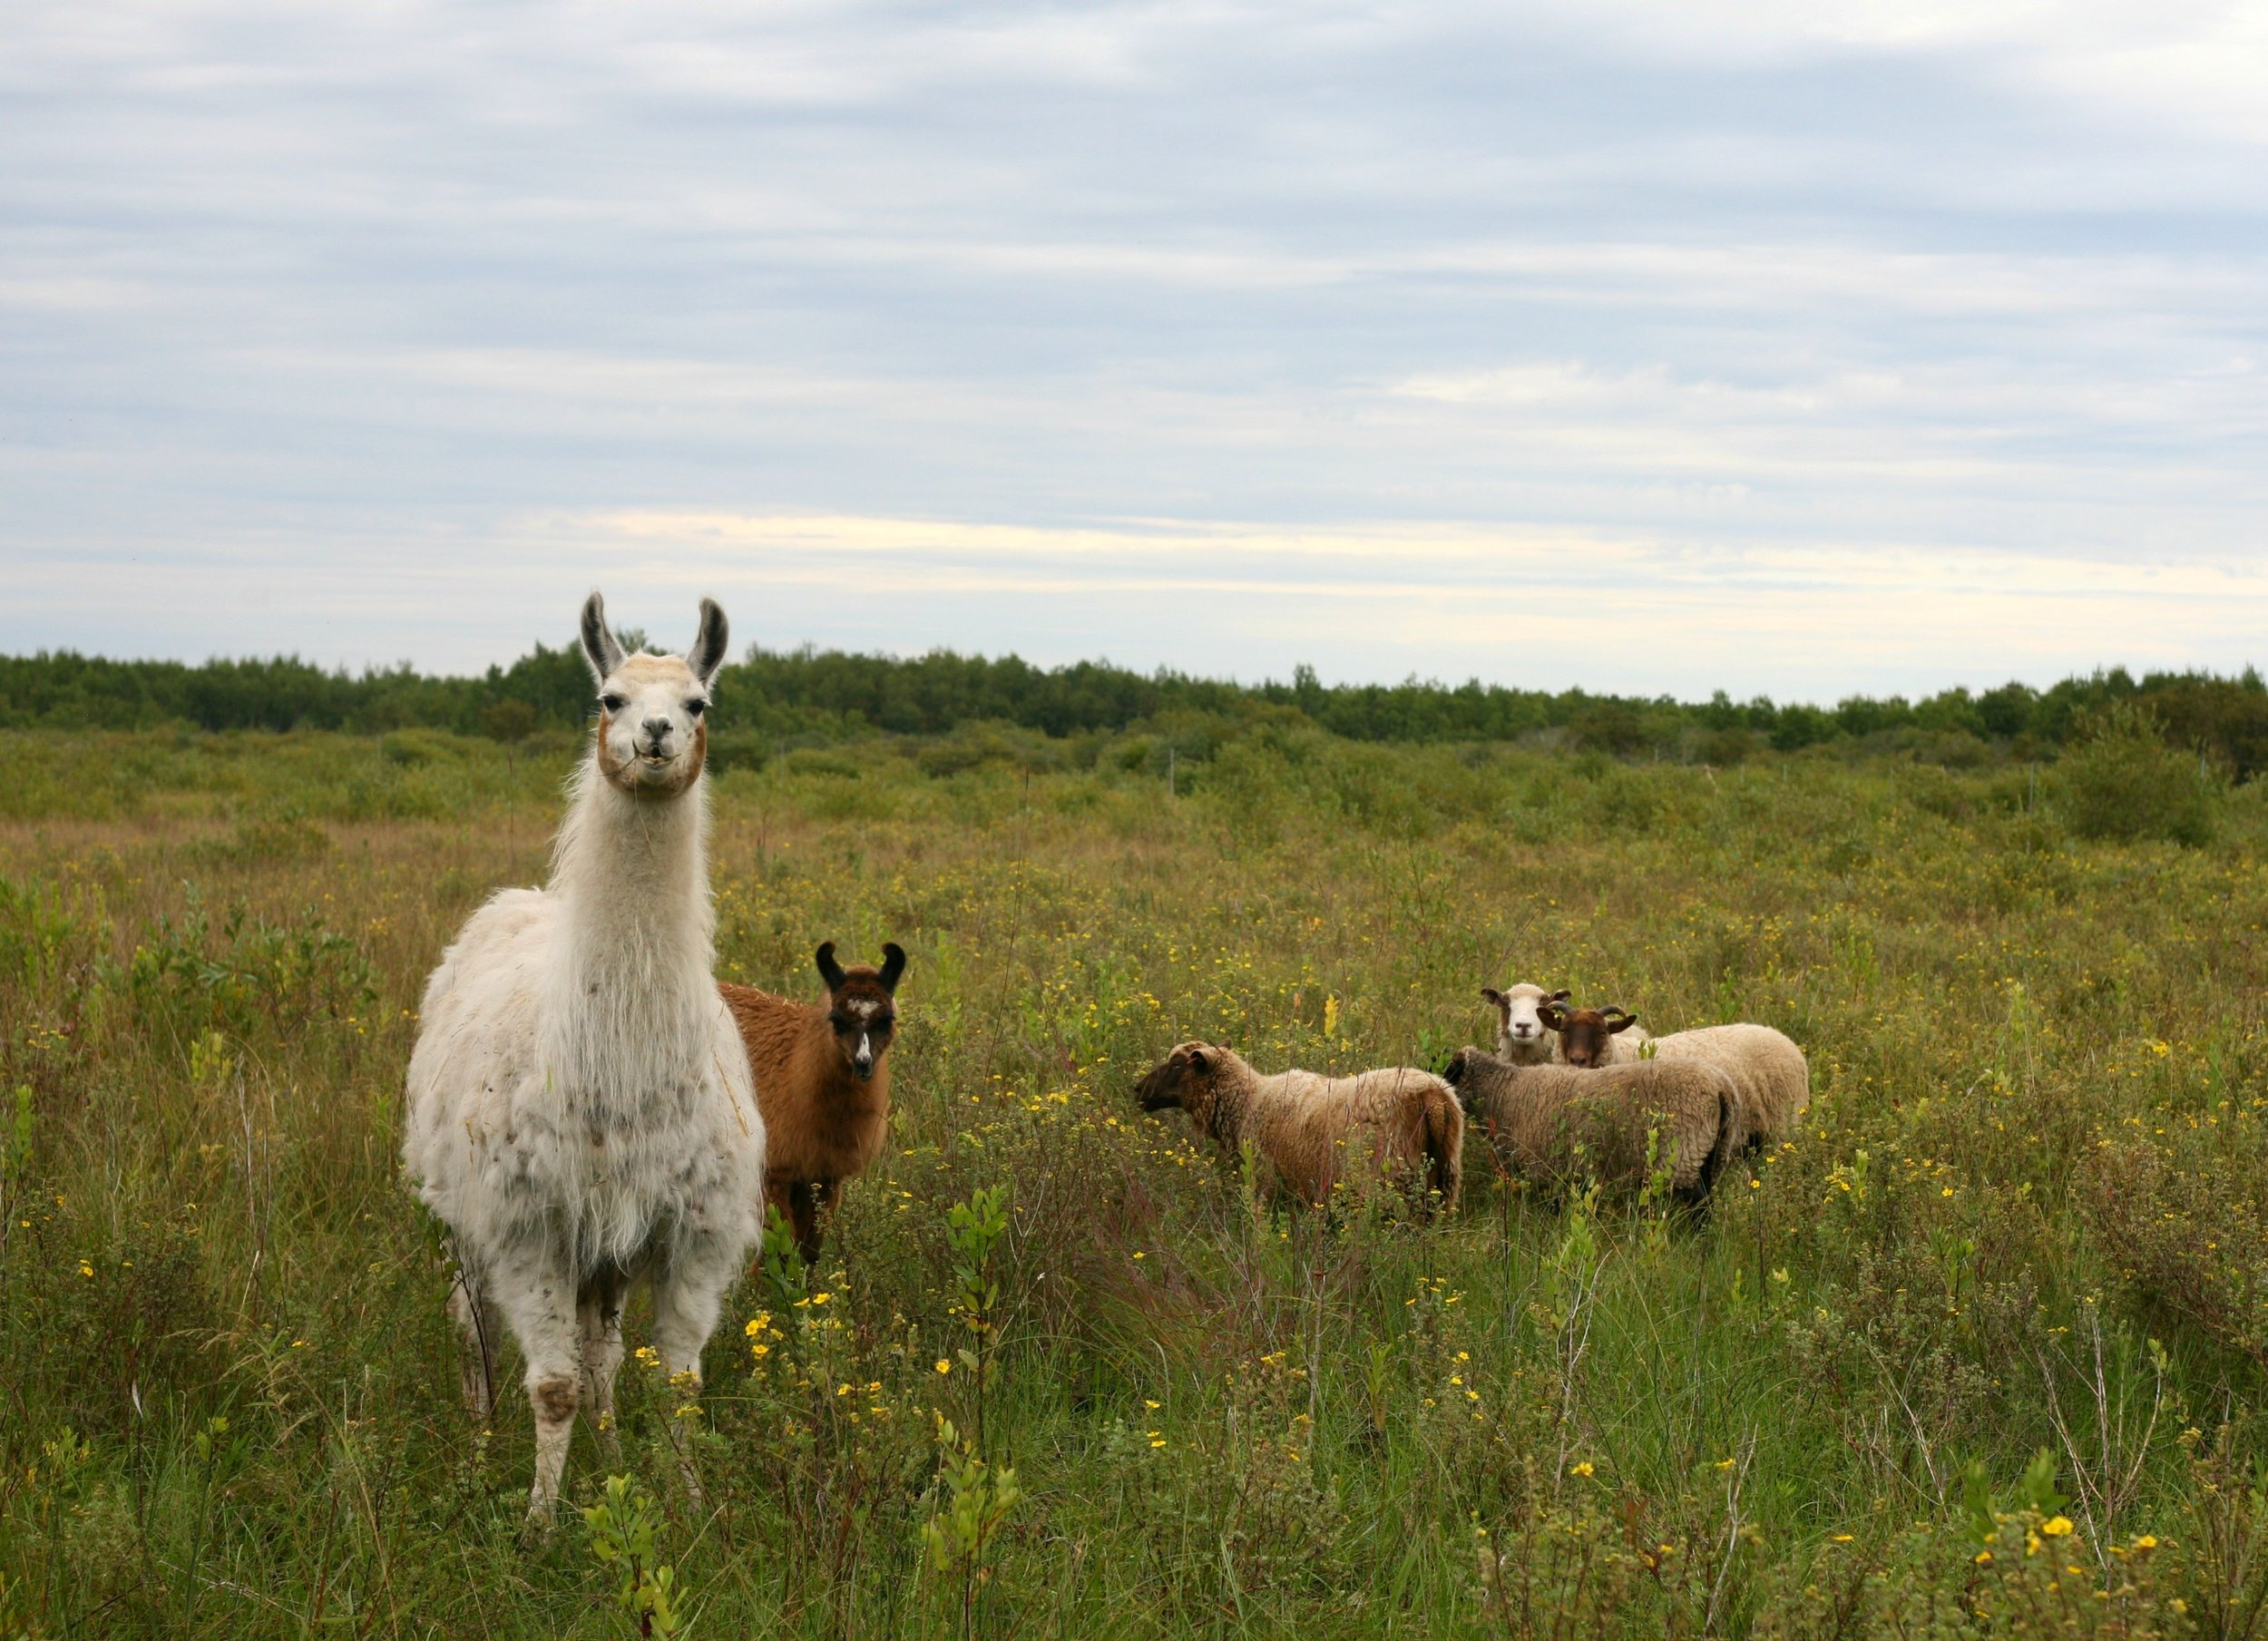 The llamas and the sheep getting to know each other, and checking out their new home.